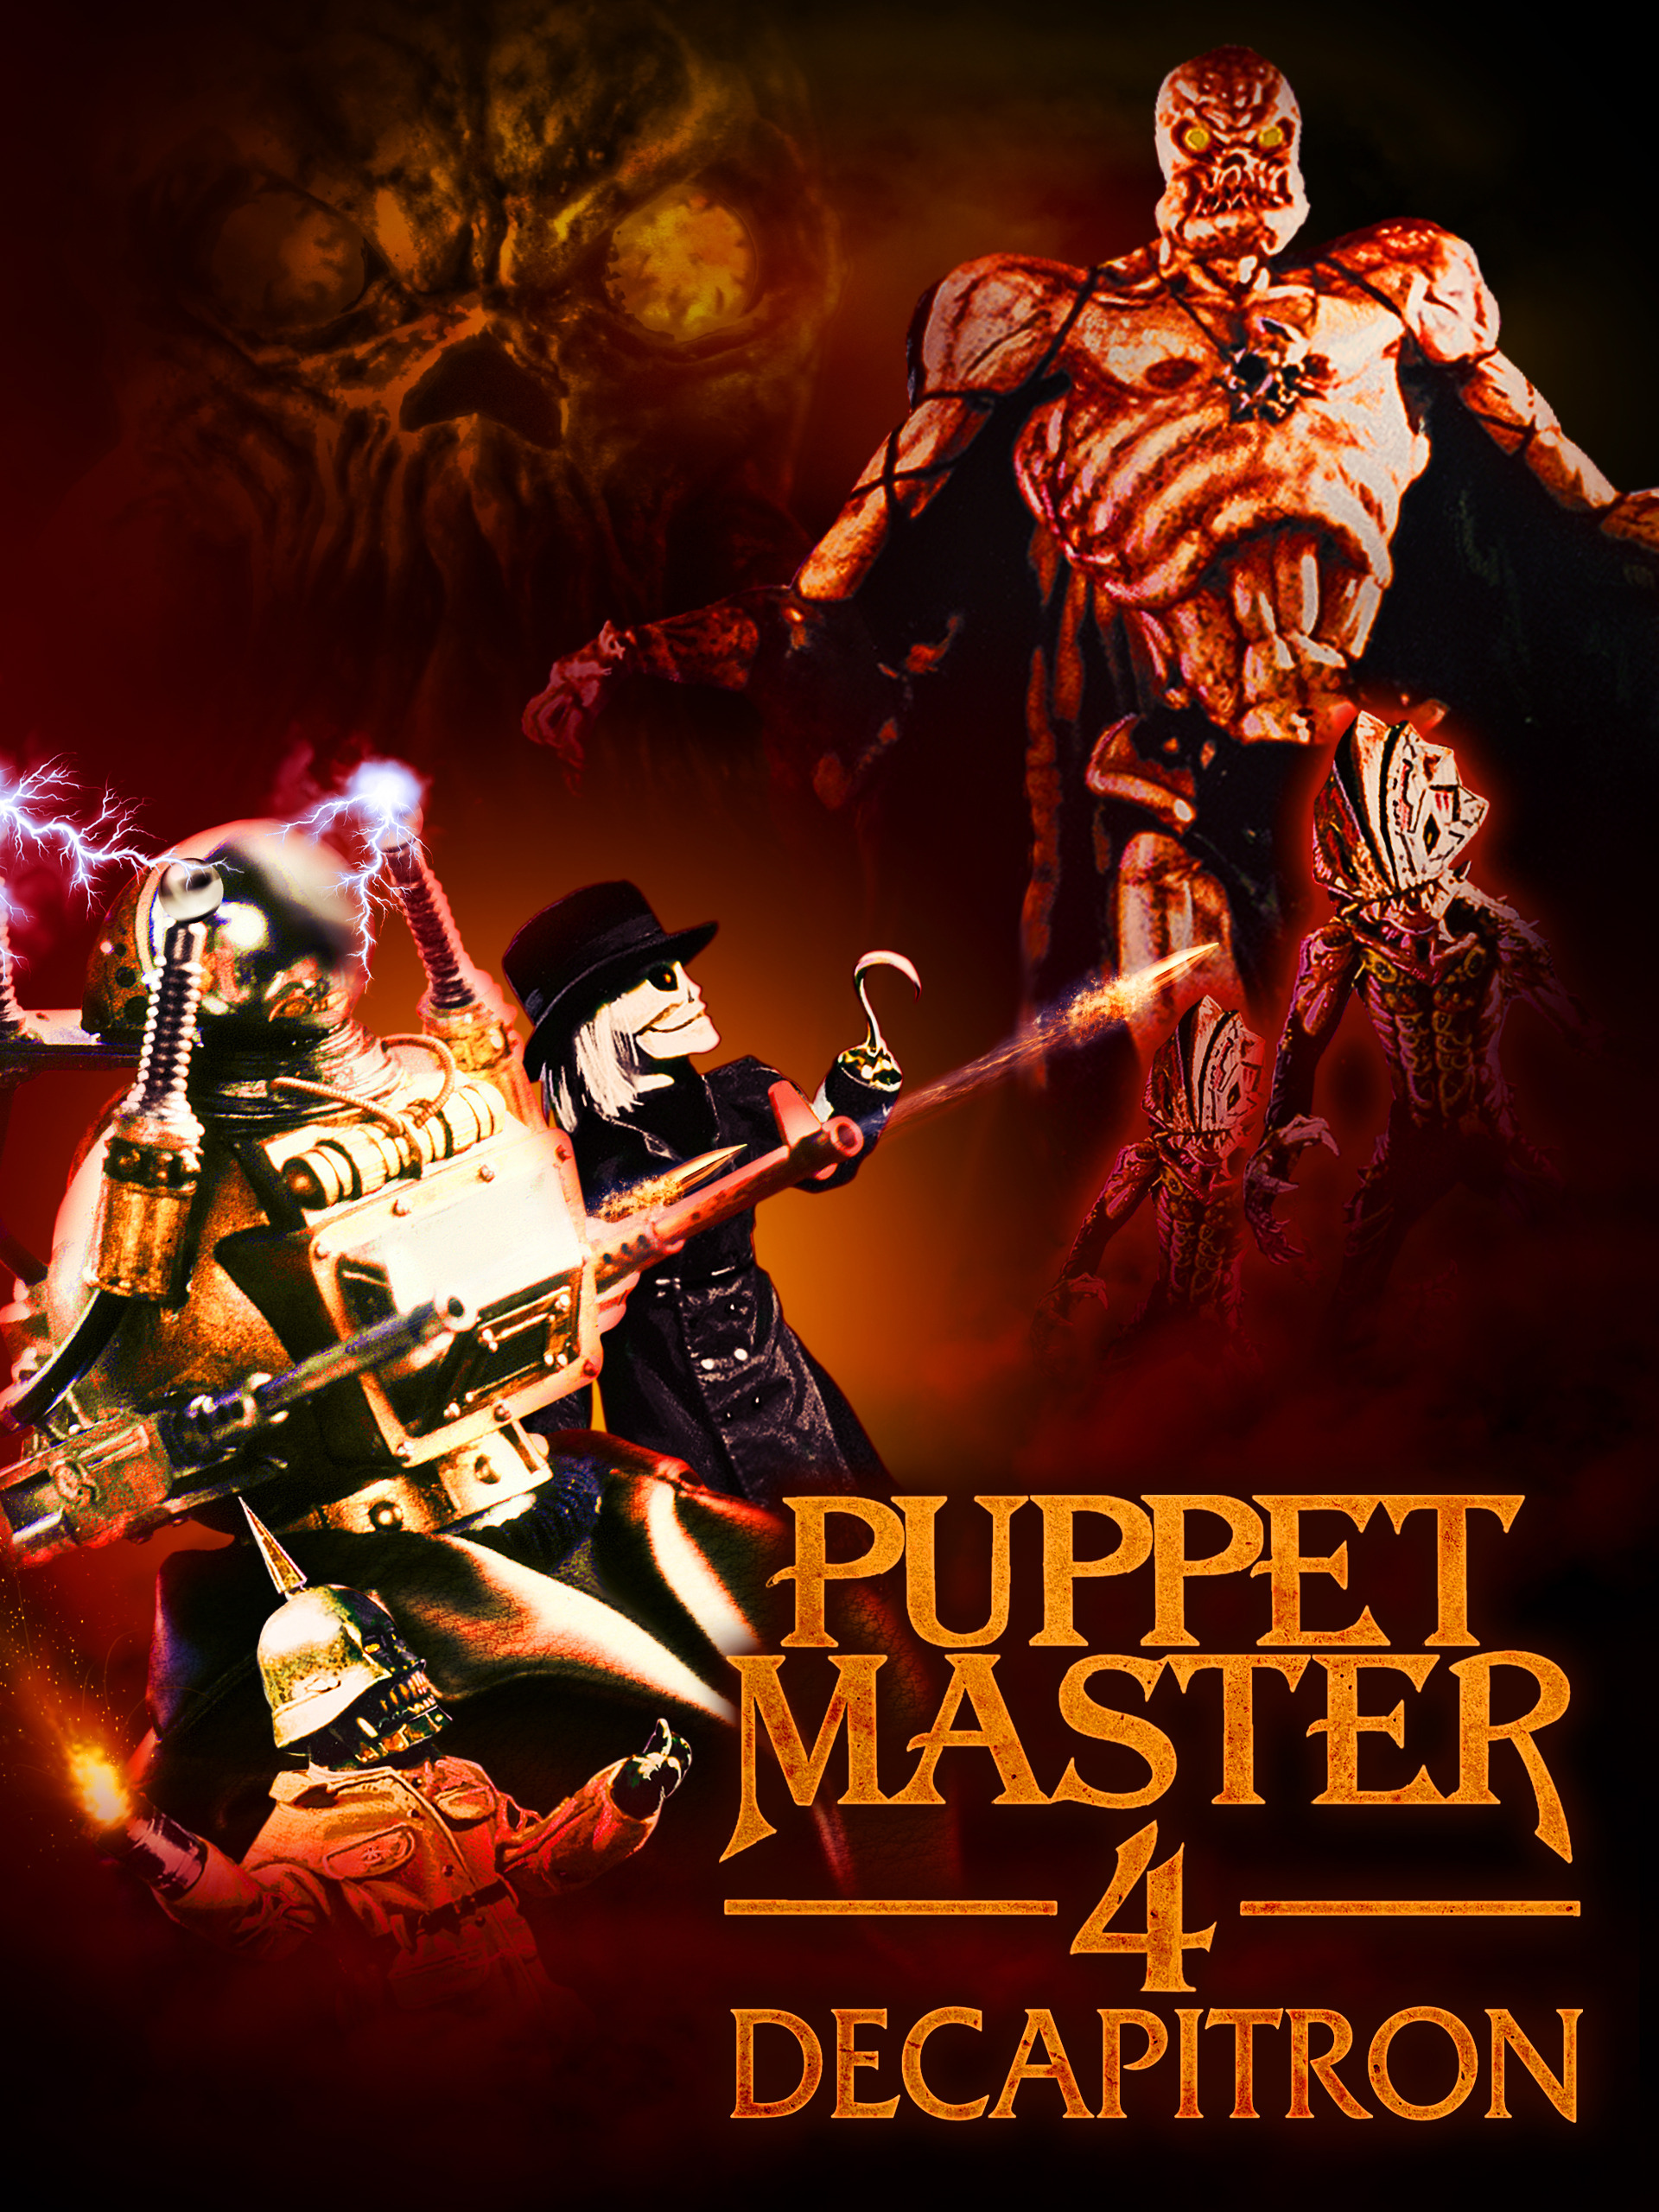 Puppet Master 4: Decapitron